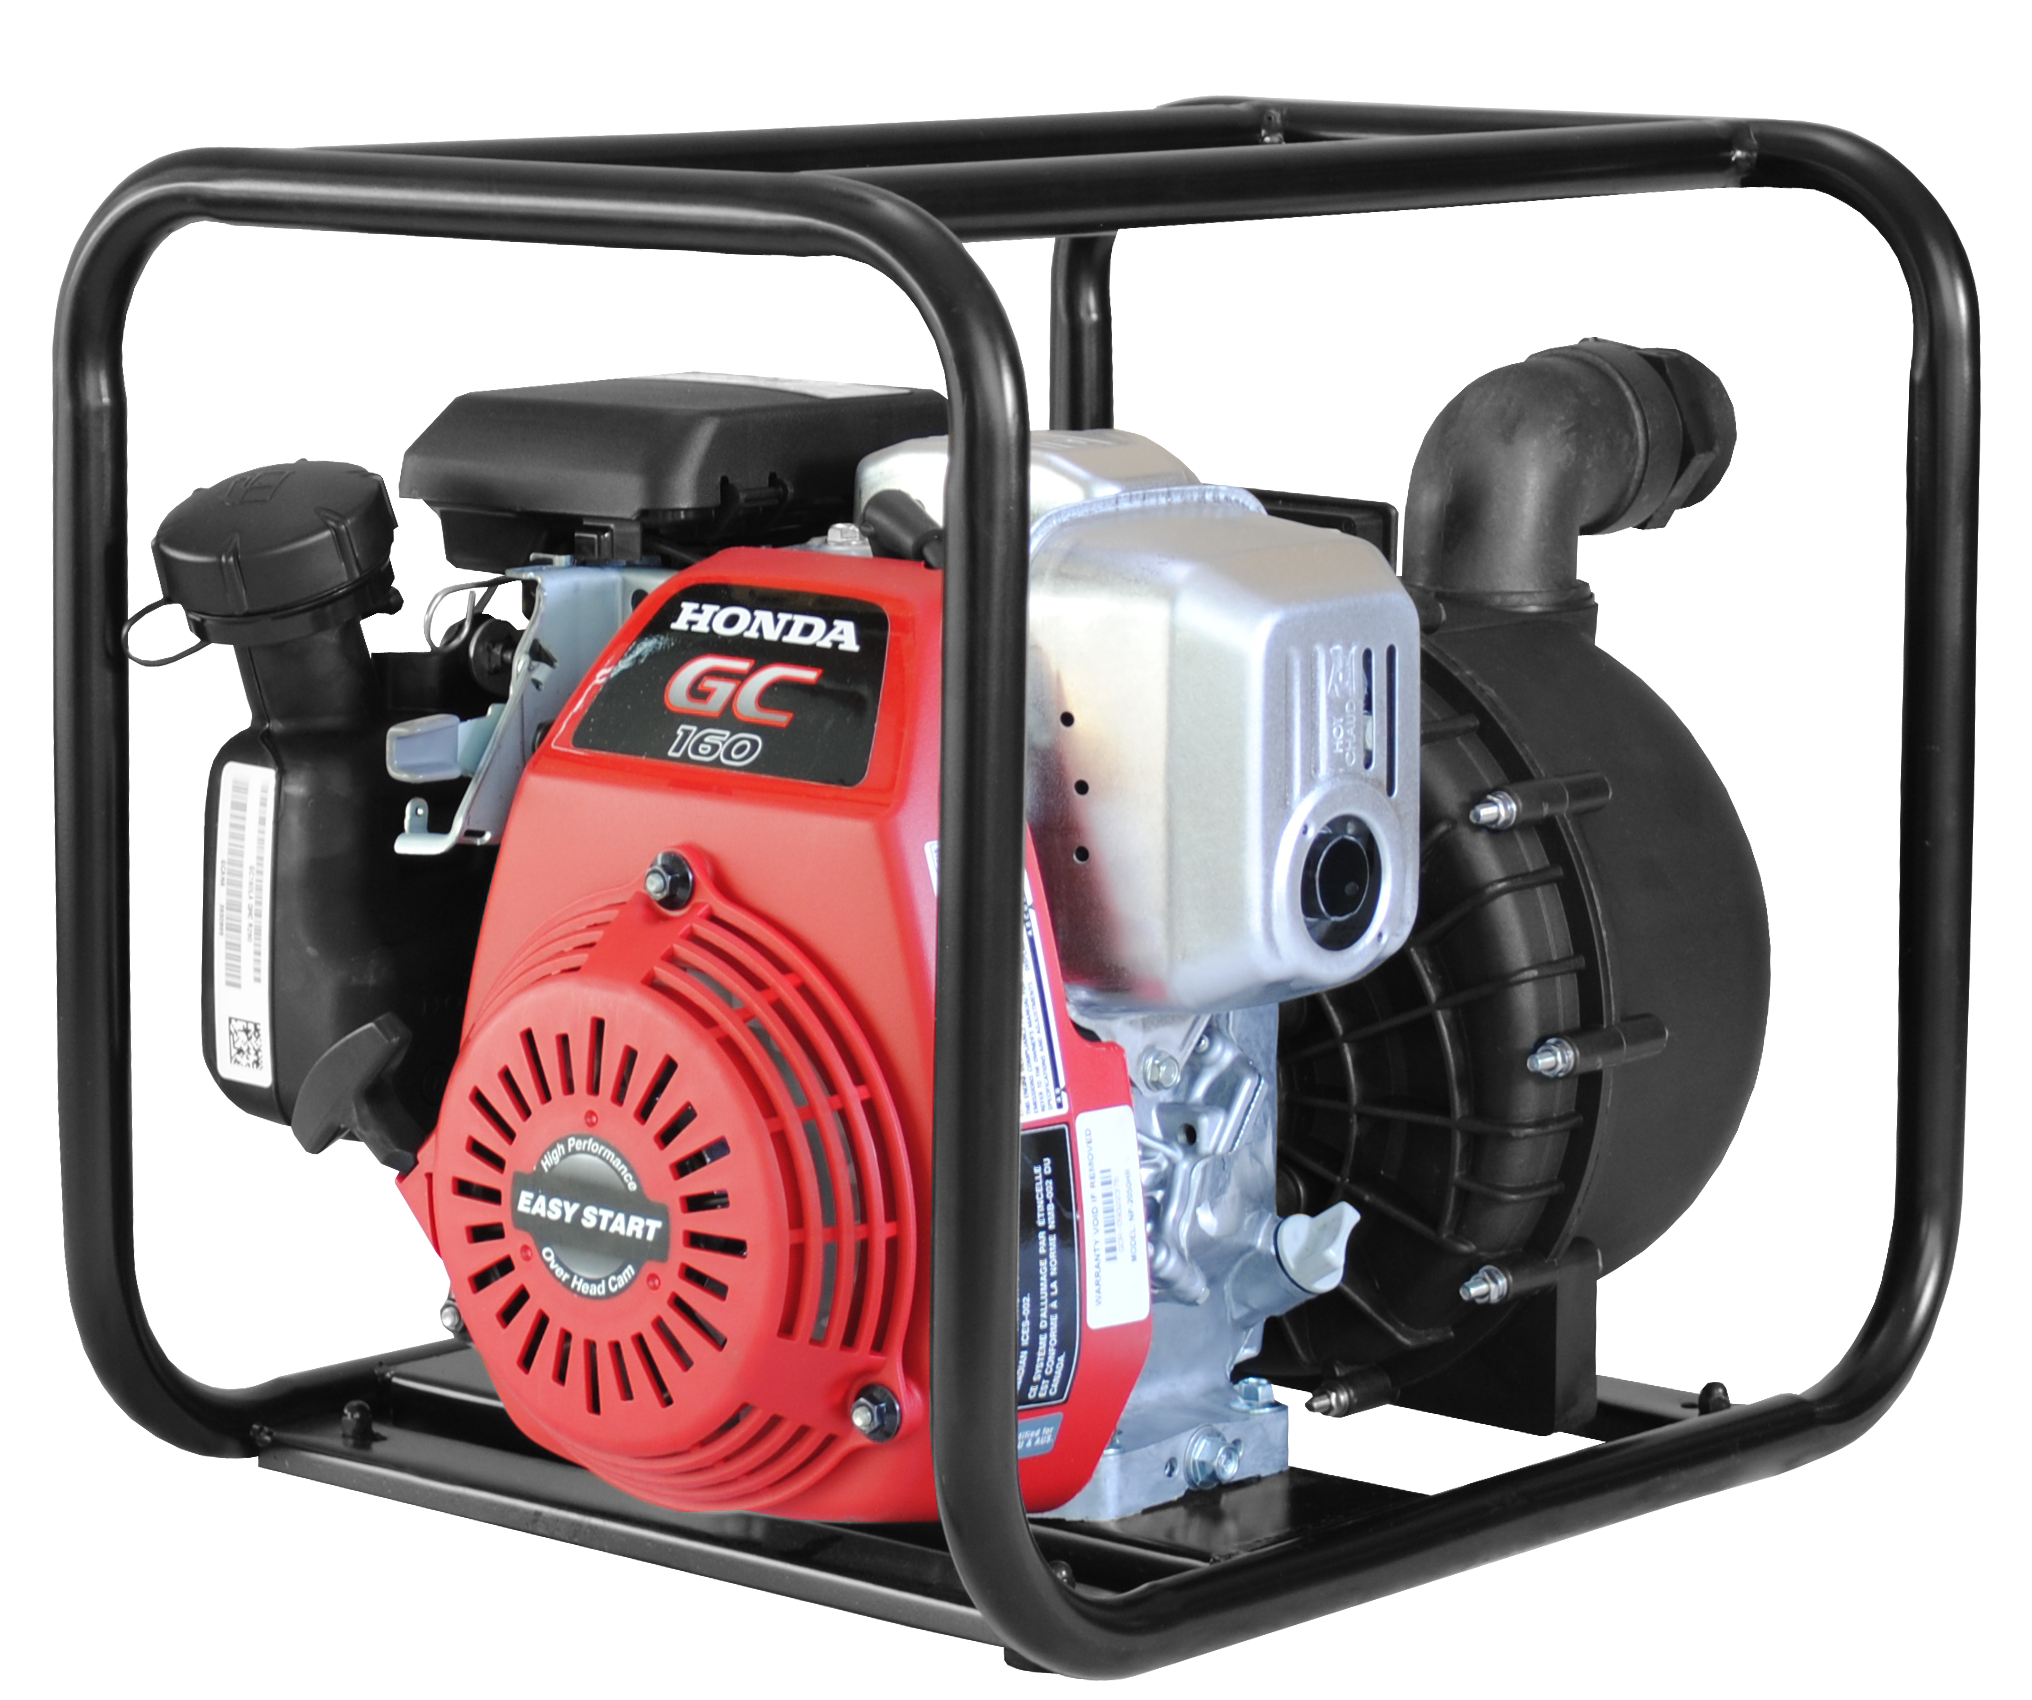 Generator Png Image Gpm Water Pumps Pumps